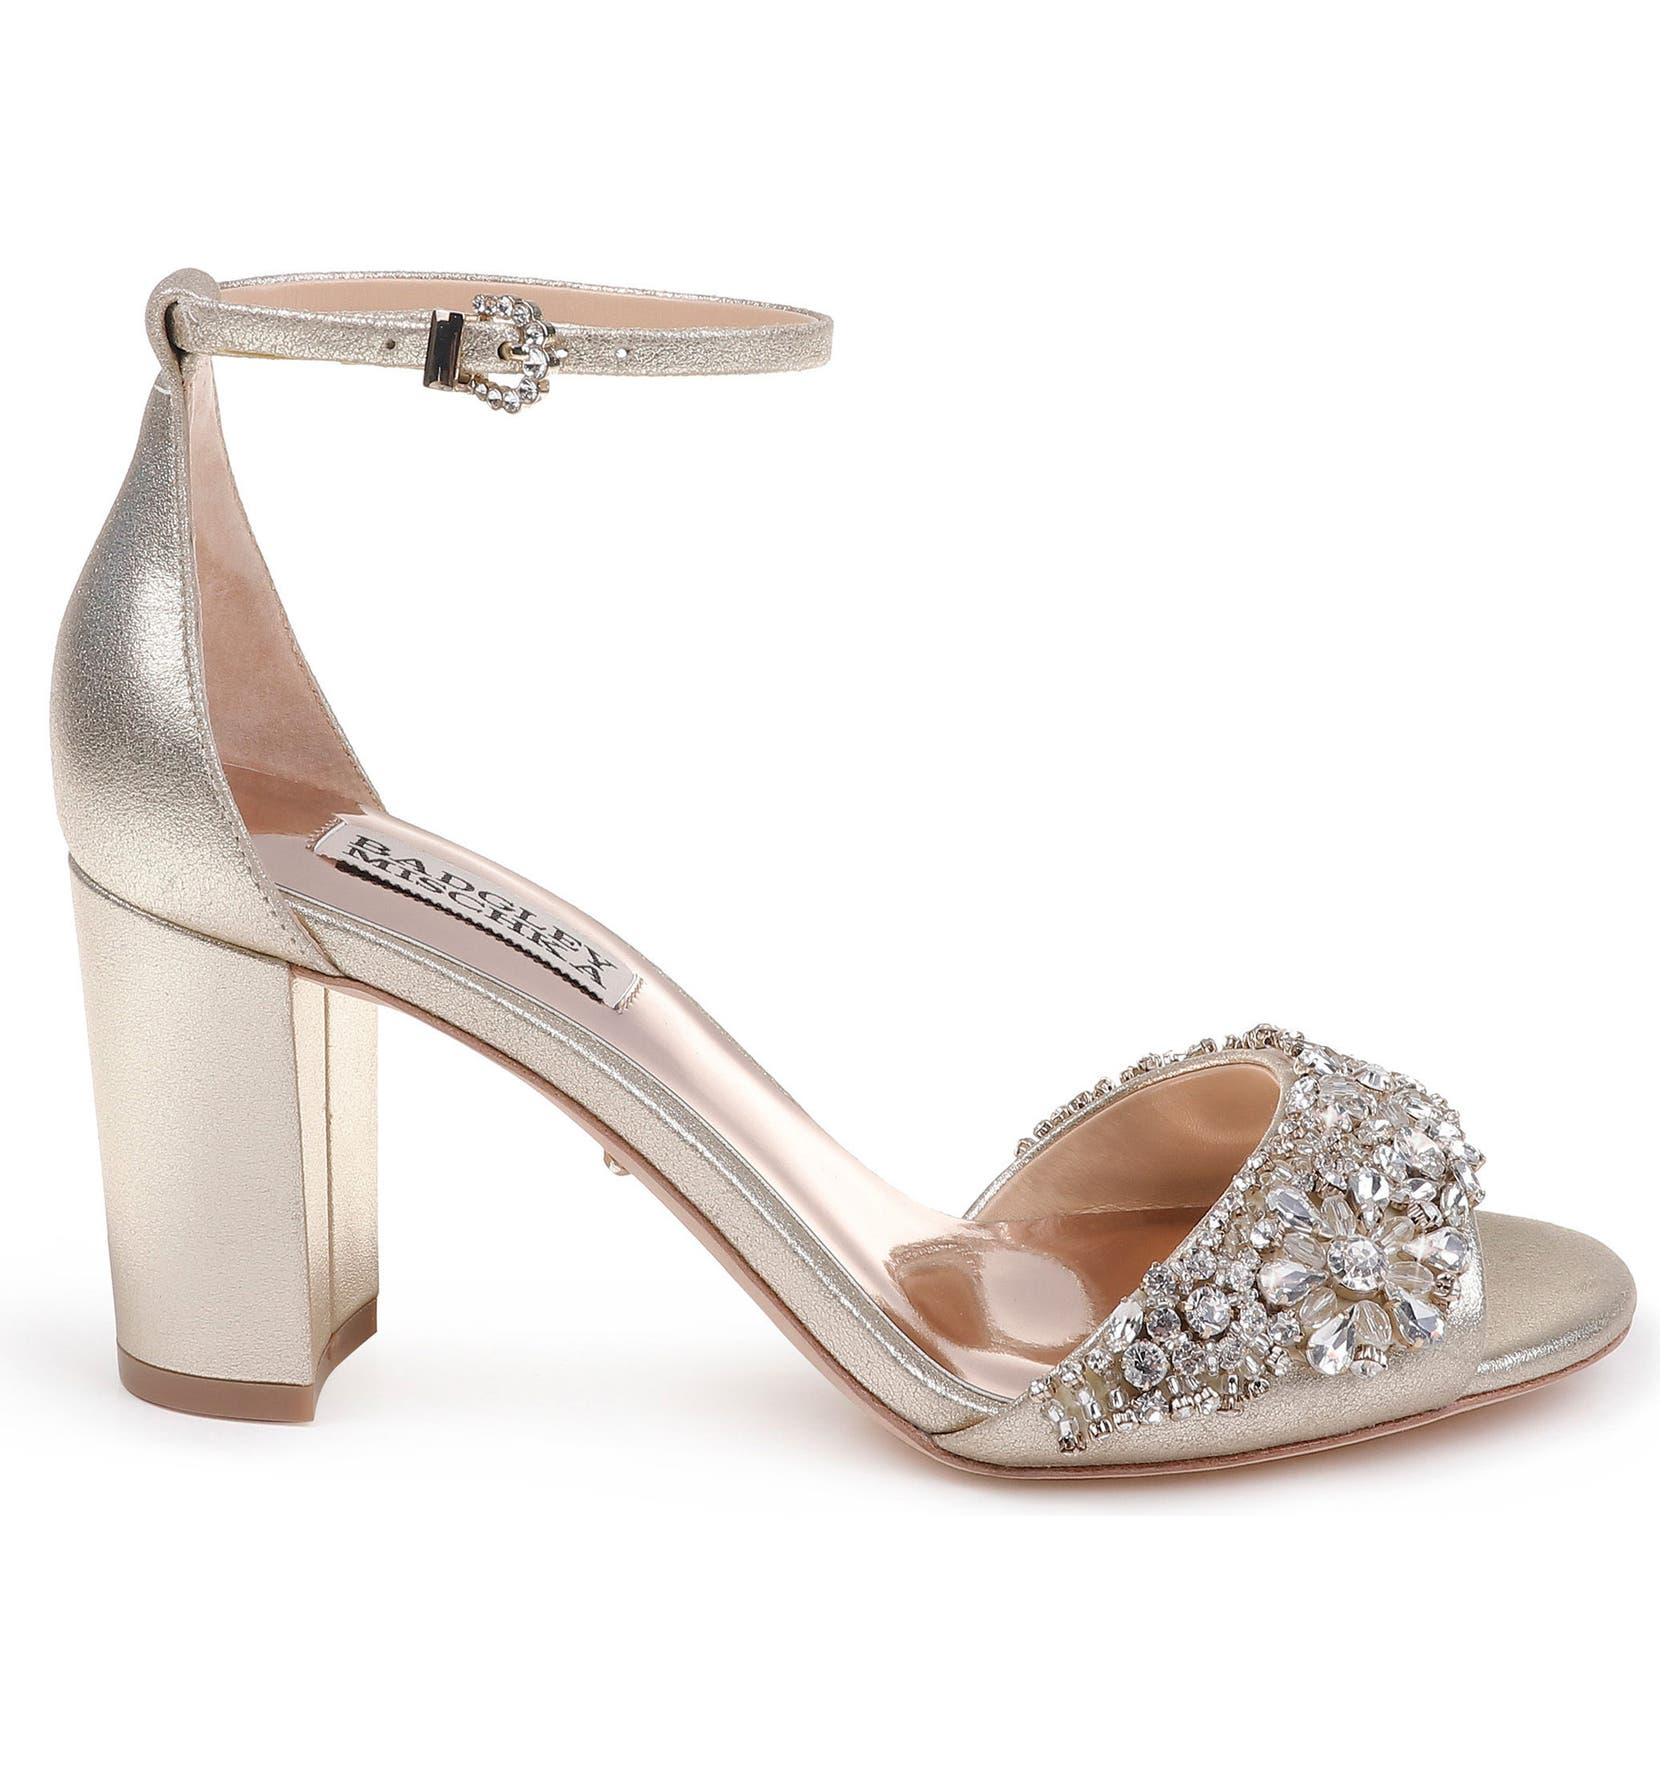 90e525f8254 Badgley Mischka Hines Embellished Block Heel Sandal (Women)